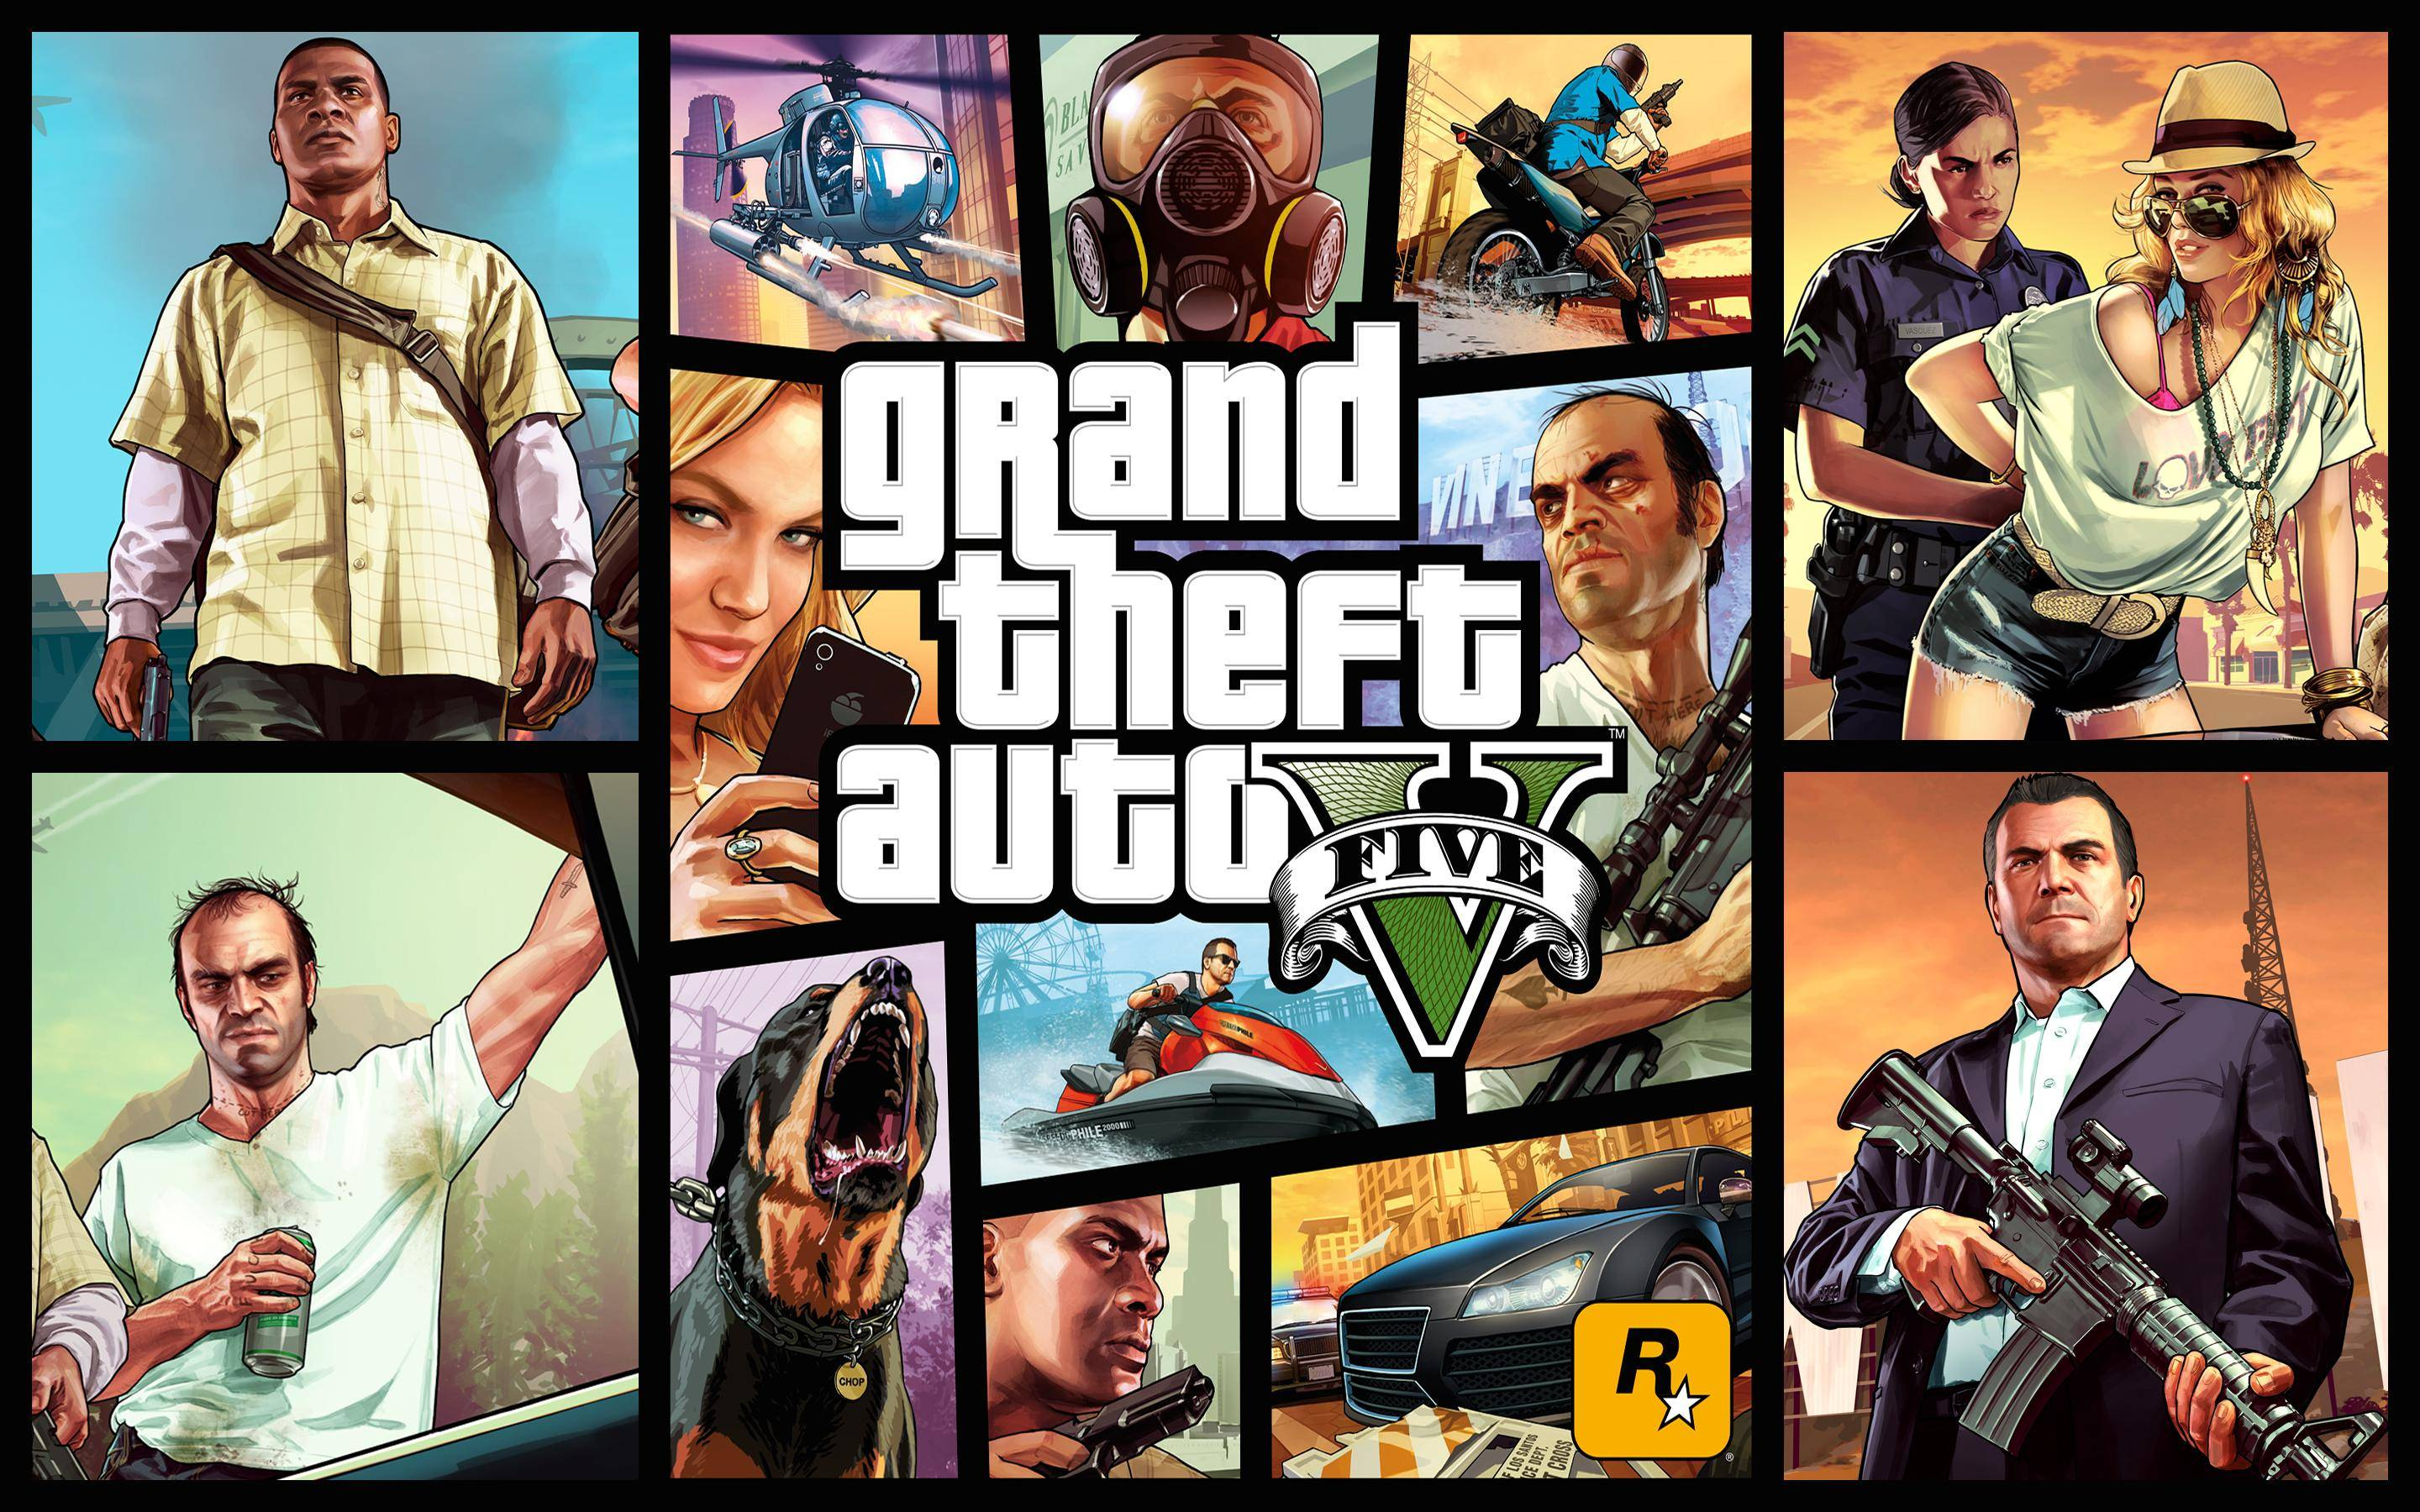 GTA V Wallpaper Full HD Background Pictures 2880x1800